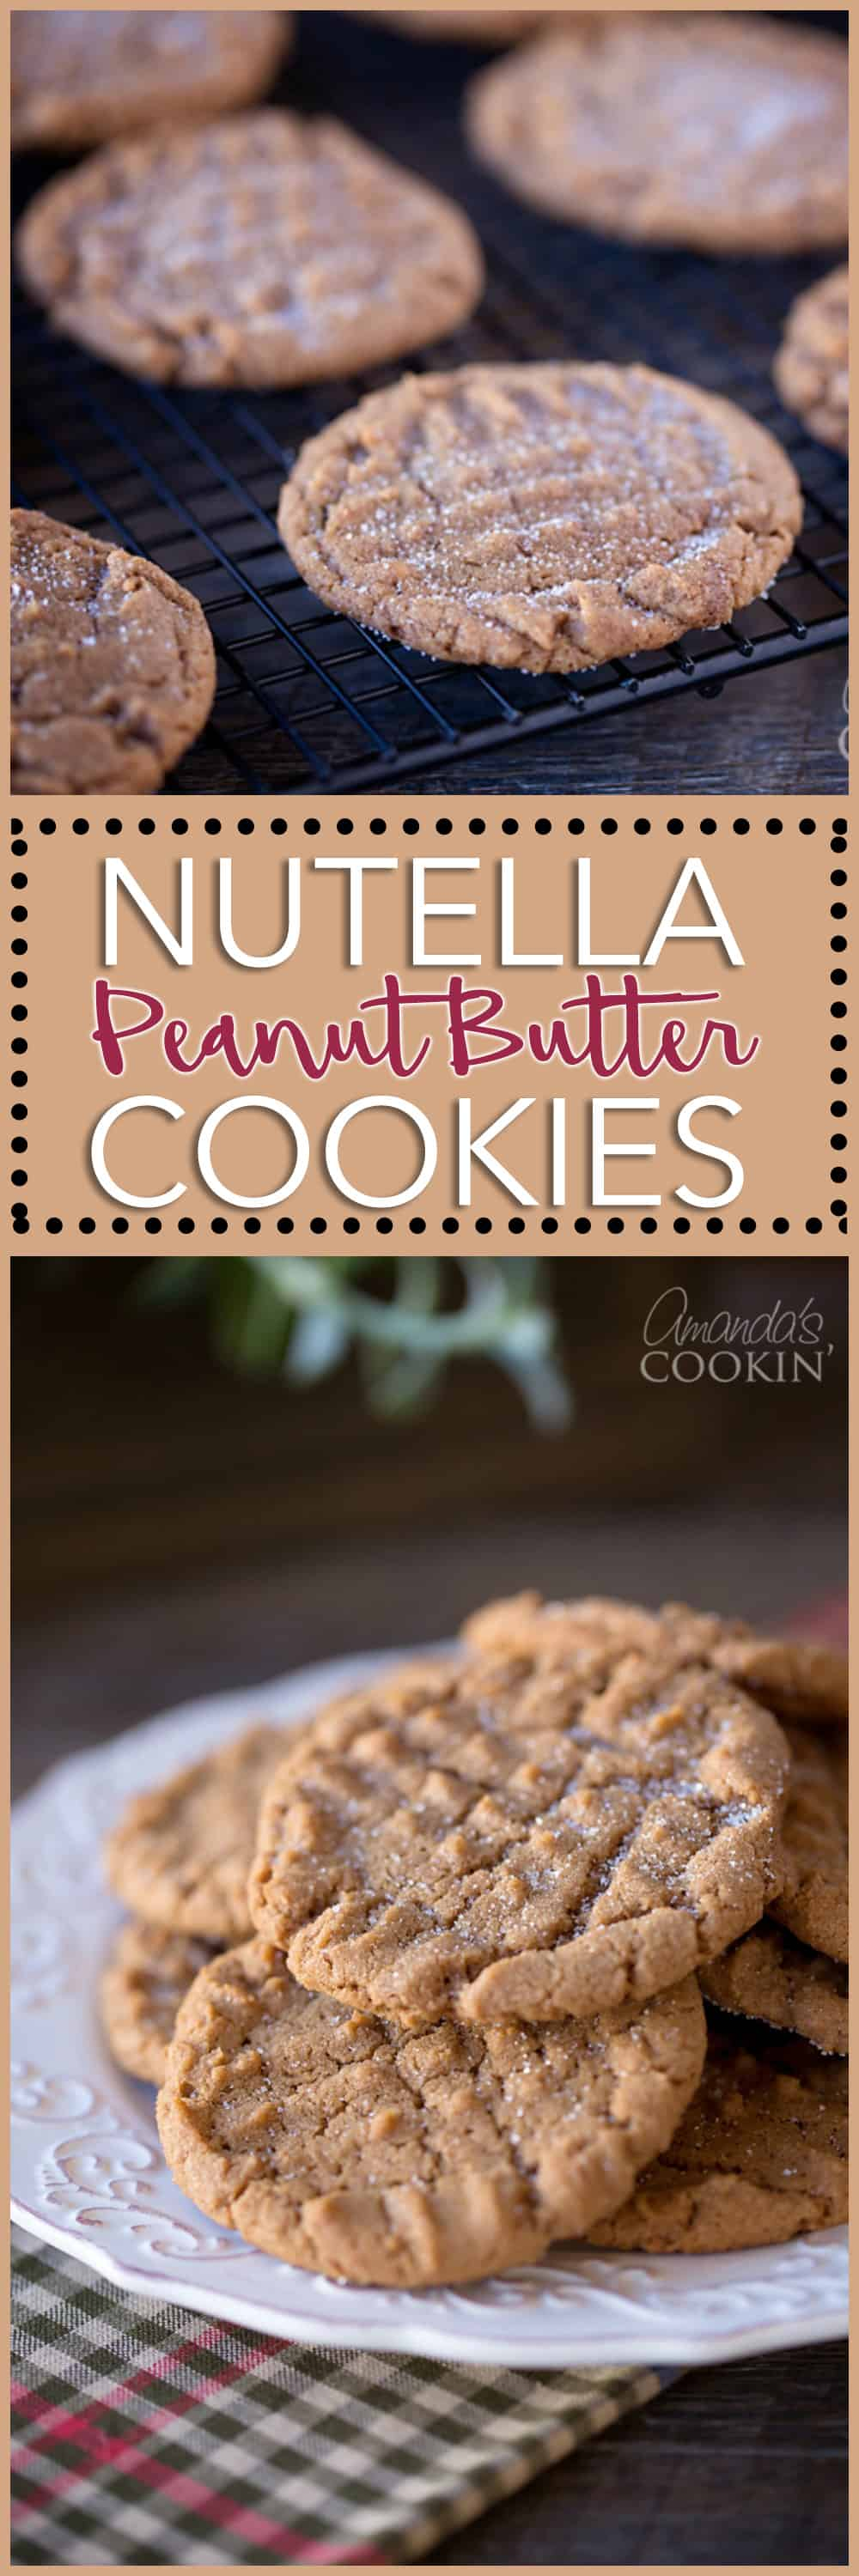 Photos of Nutella peanut butter cookies.